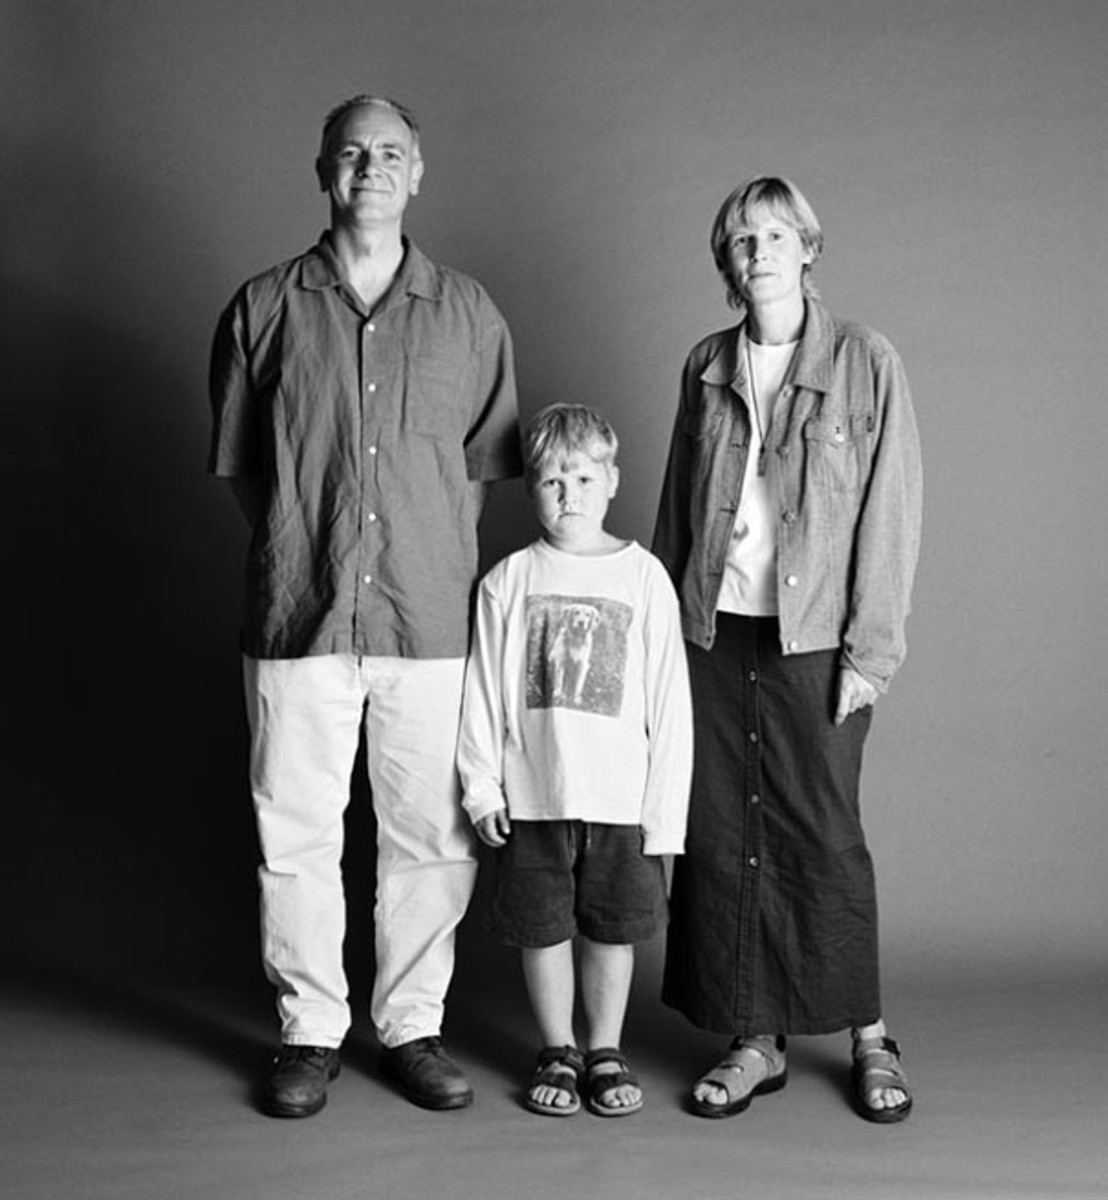 the-family-aging-photo-series-7